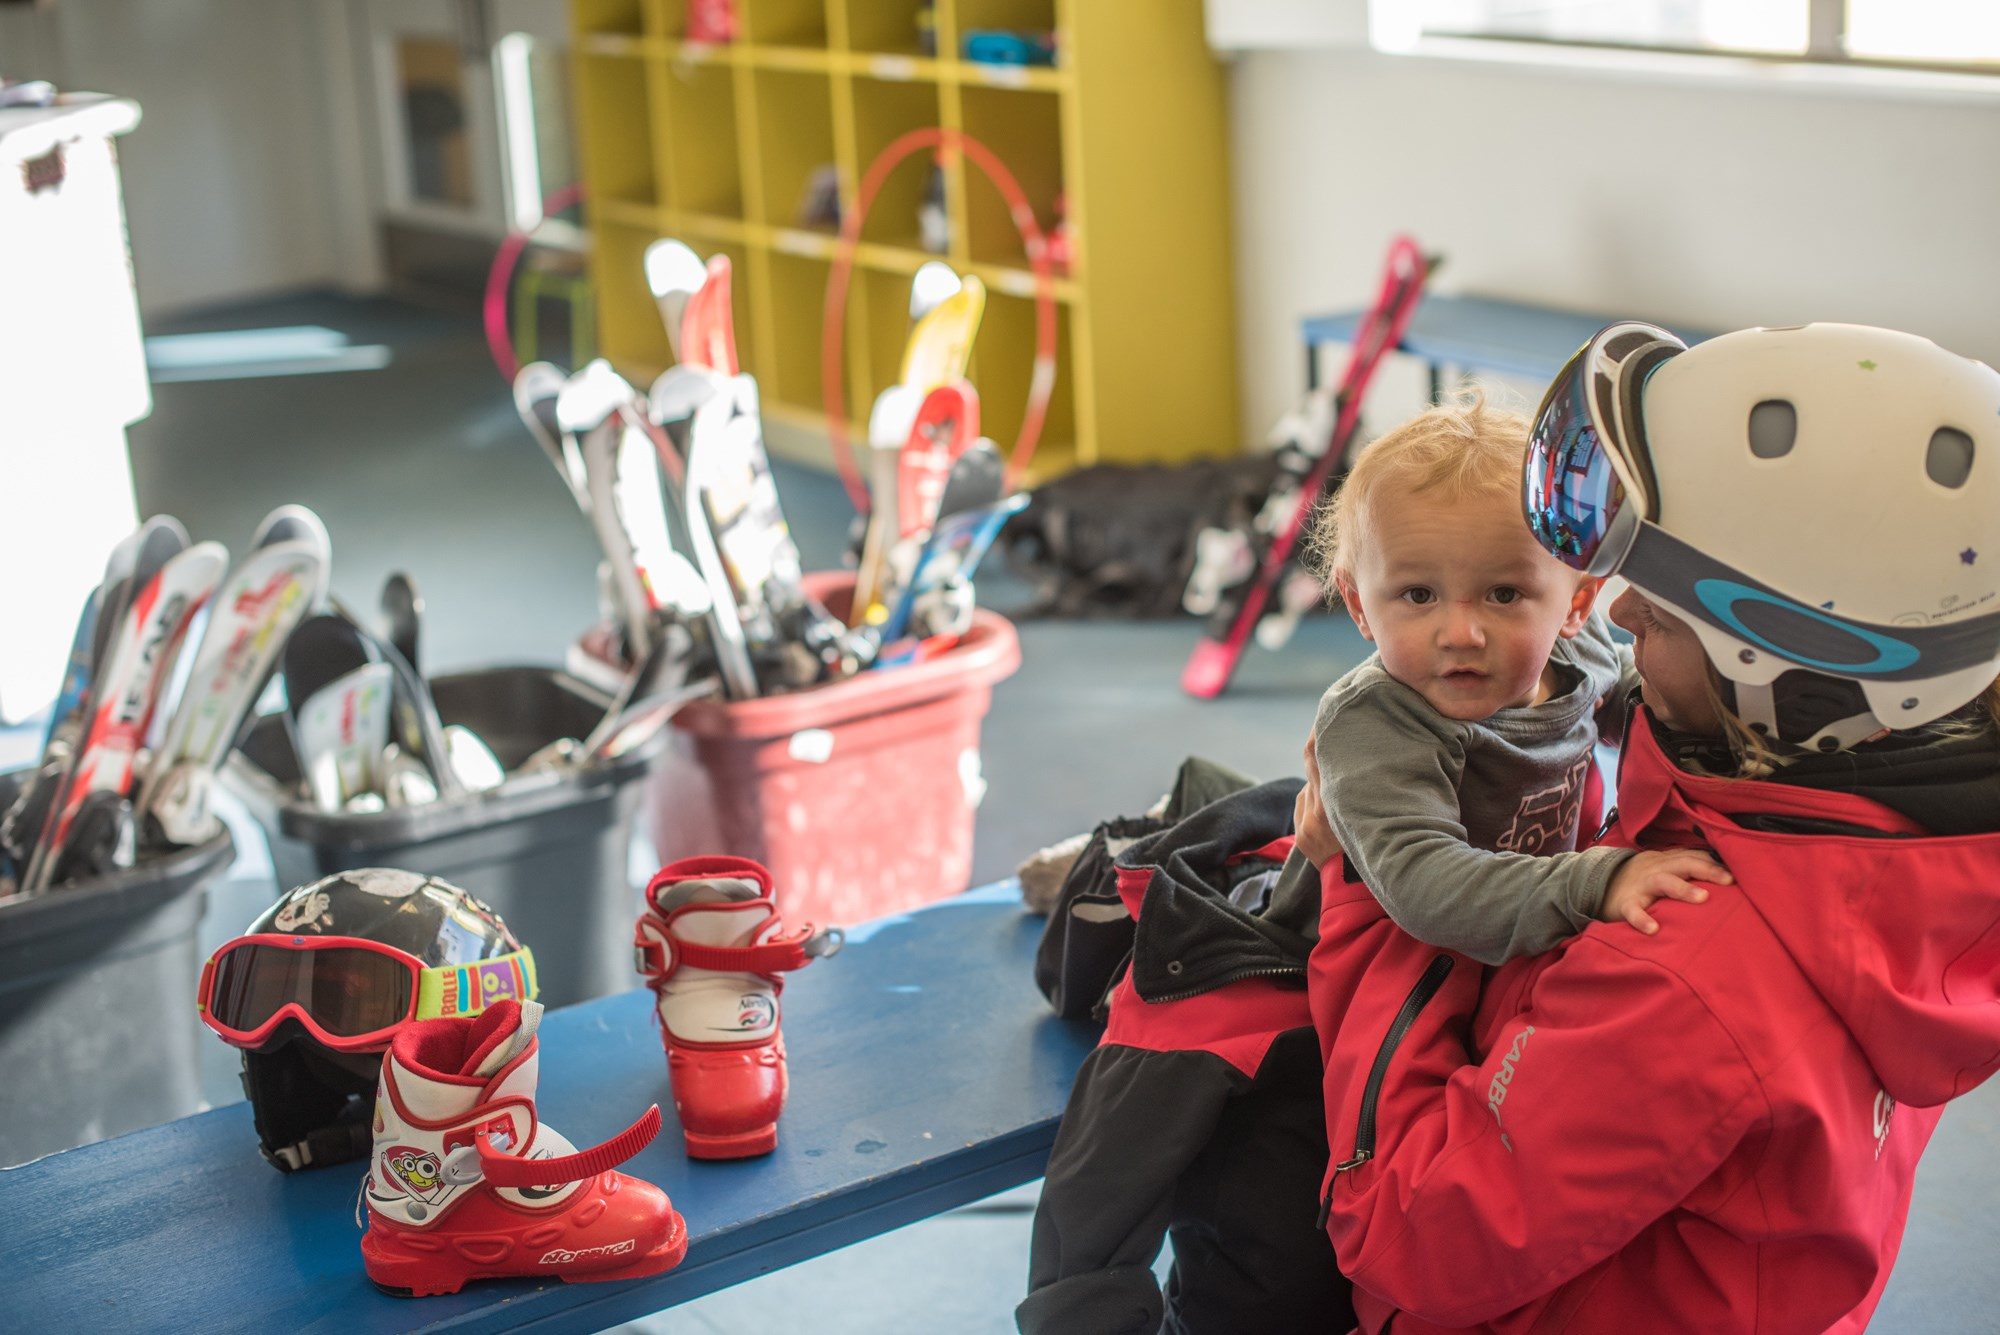 Kindy Childcare at Cardrona Alpine Resort